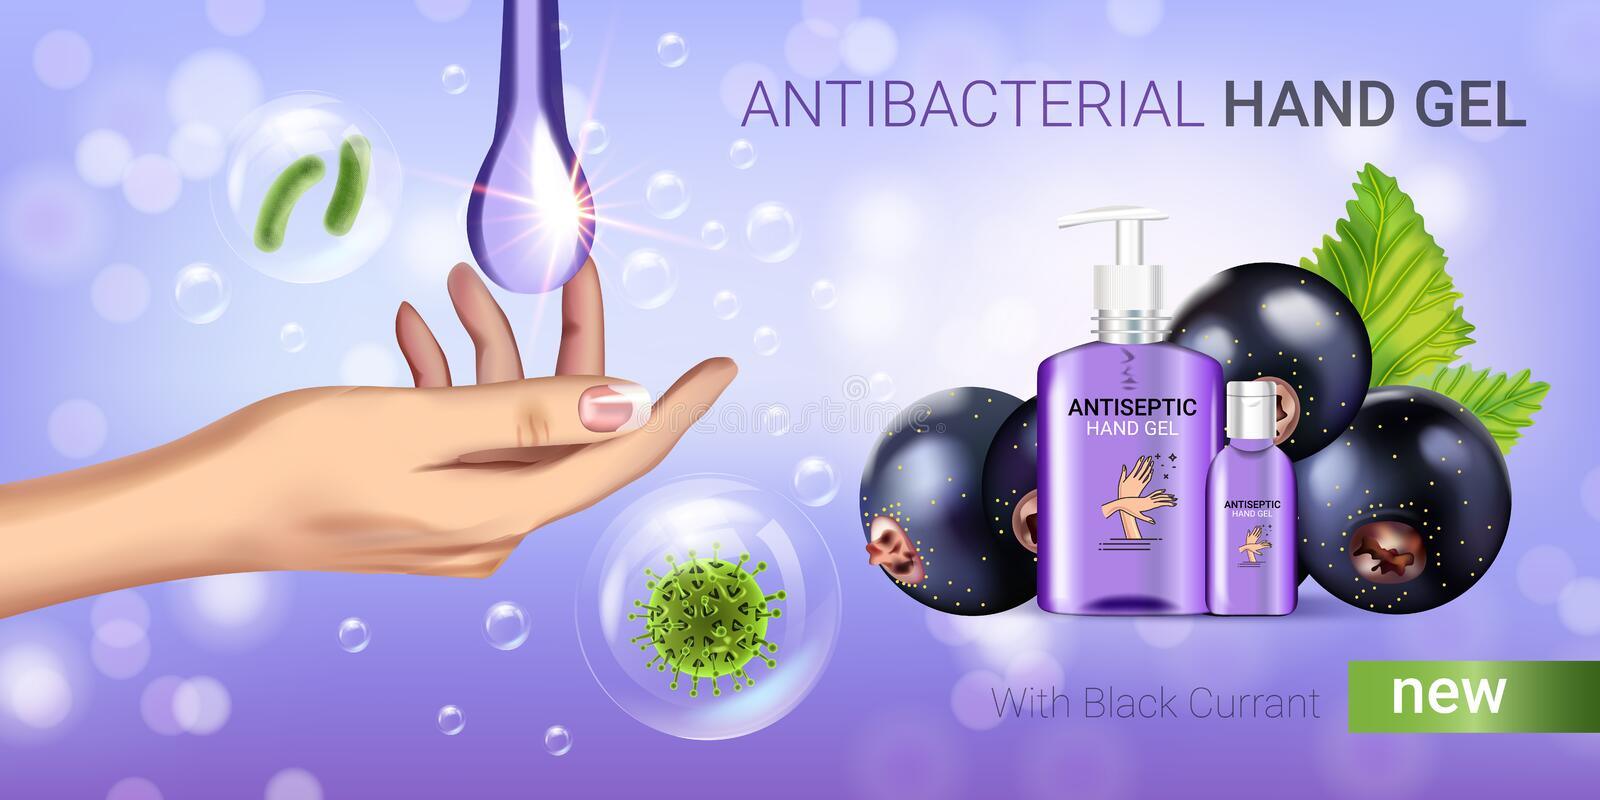 Black currant flavor antibacterial hand gel ads. Vector Illustration with antiseptic hand gel in bottles and blackcurrant elements stock illustration